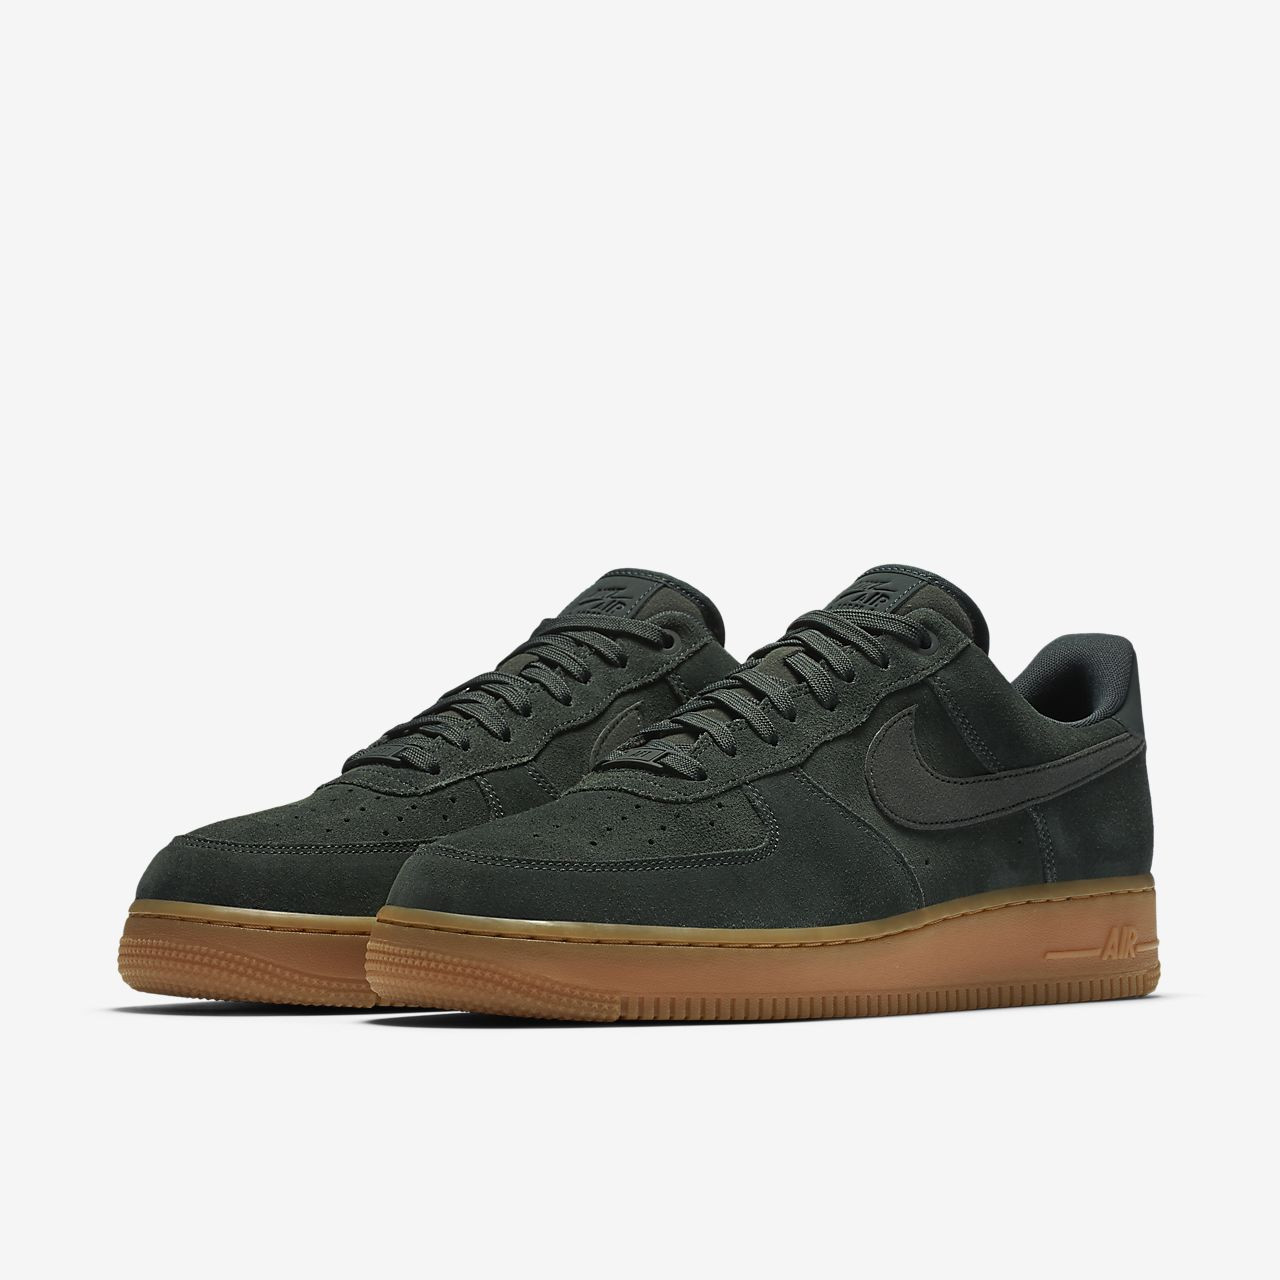 nike air force 1 07 lv8 suede men 39 s shoe. Black Bedroom Furniture Sets. Home Design Ideas